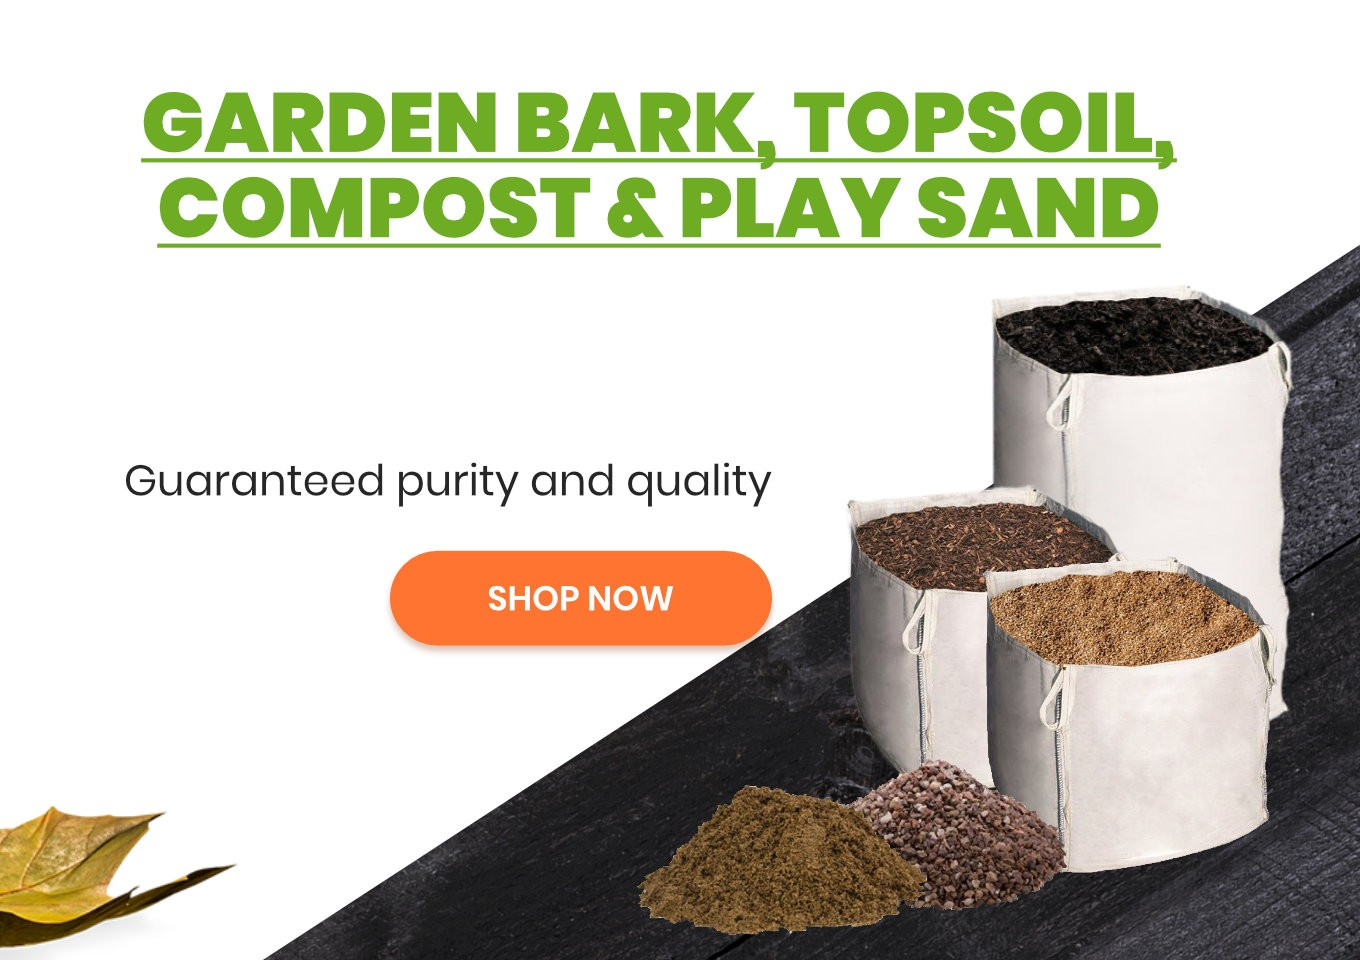 Garden_Bark_Topsoil_Compost_Play_Sand